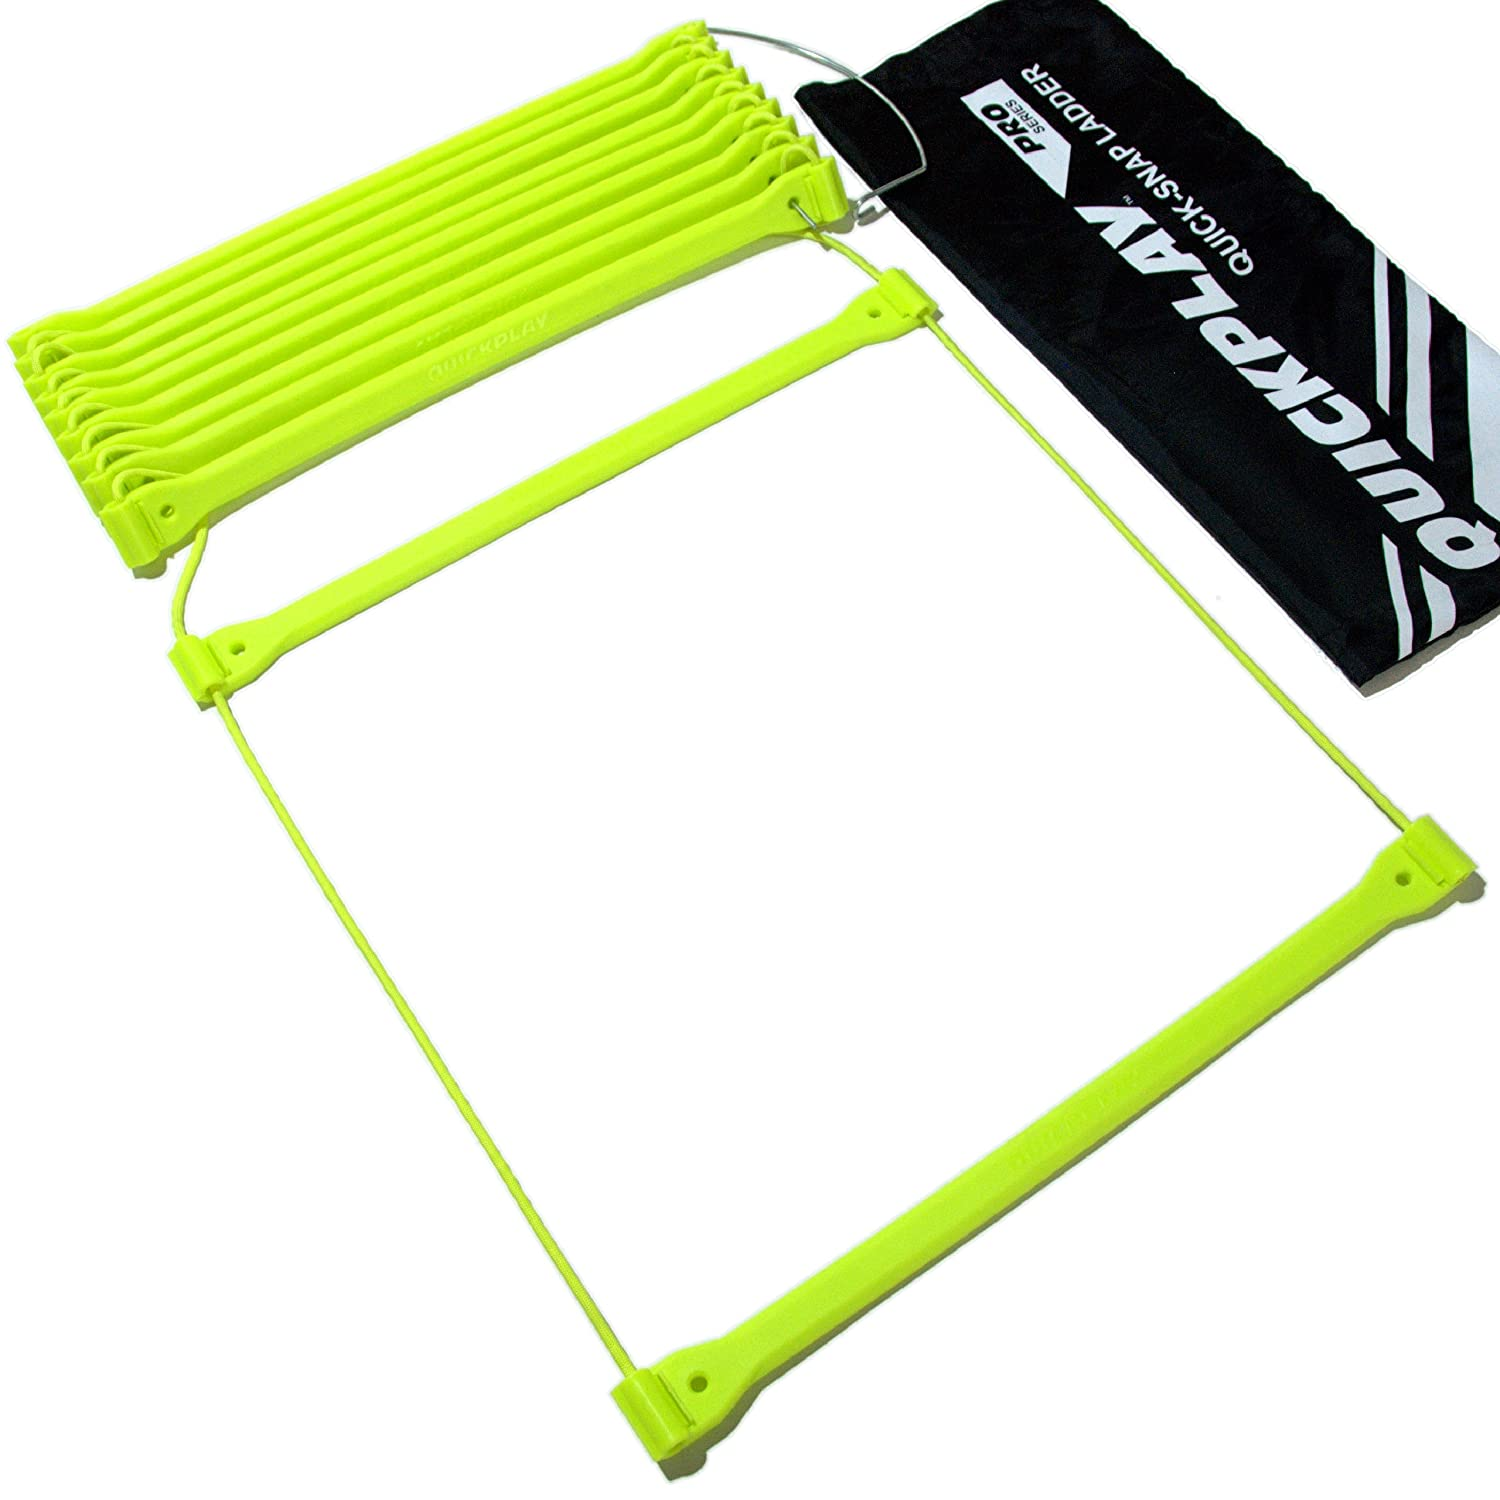 Quickplay Pro No Tangle Agility Ladder With Quick Lock Adjustable Flat  Rungs + Carry Bag (